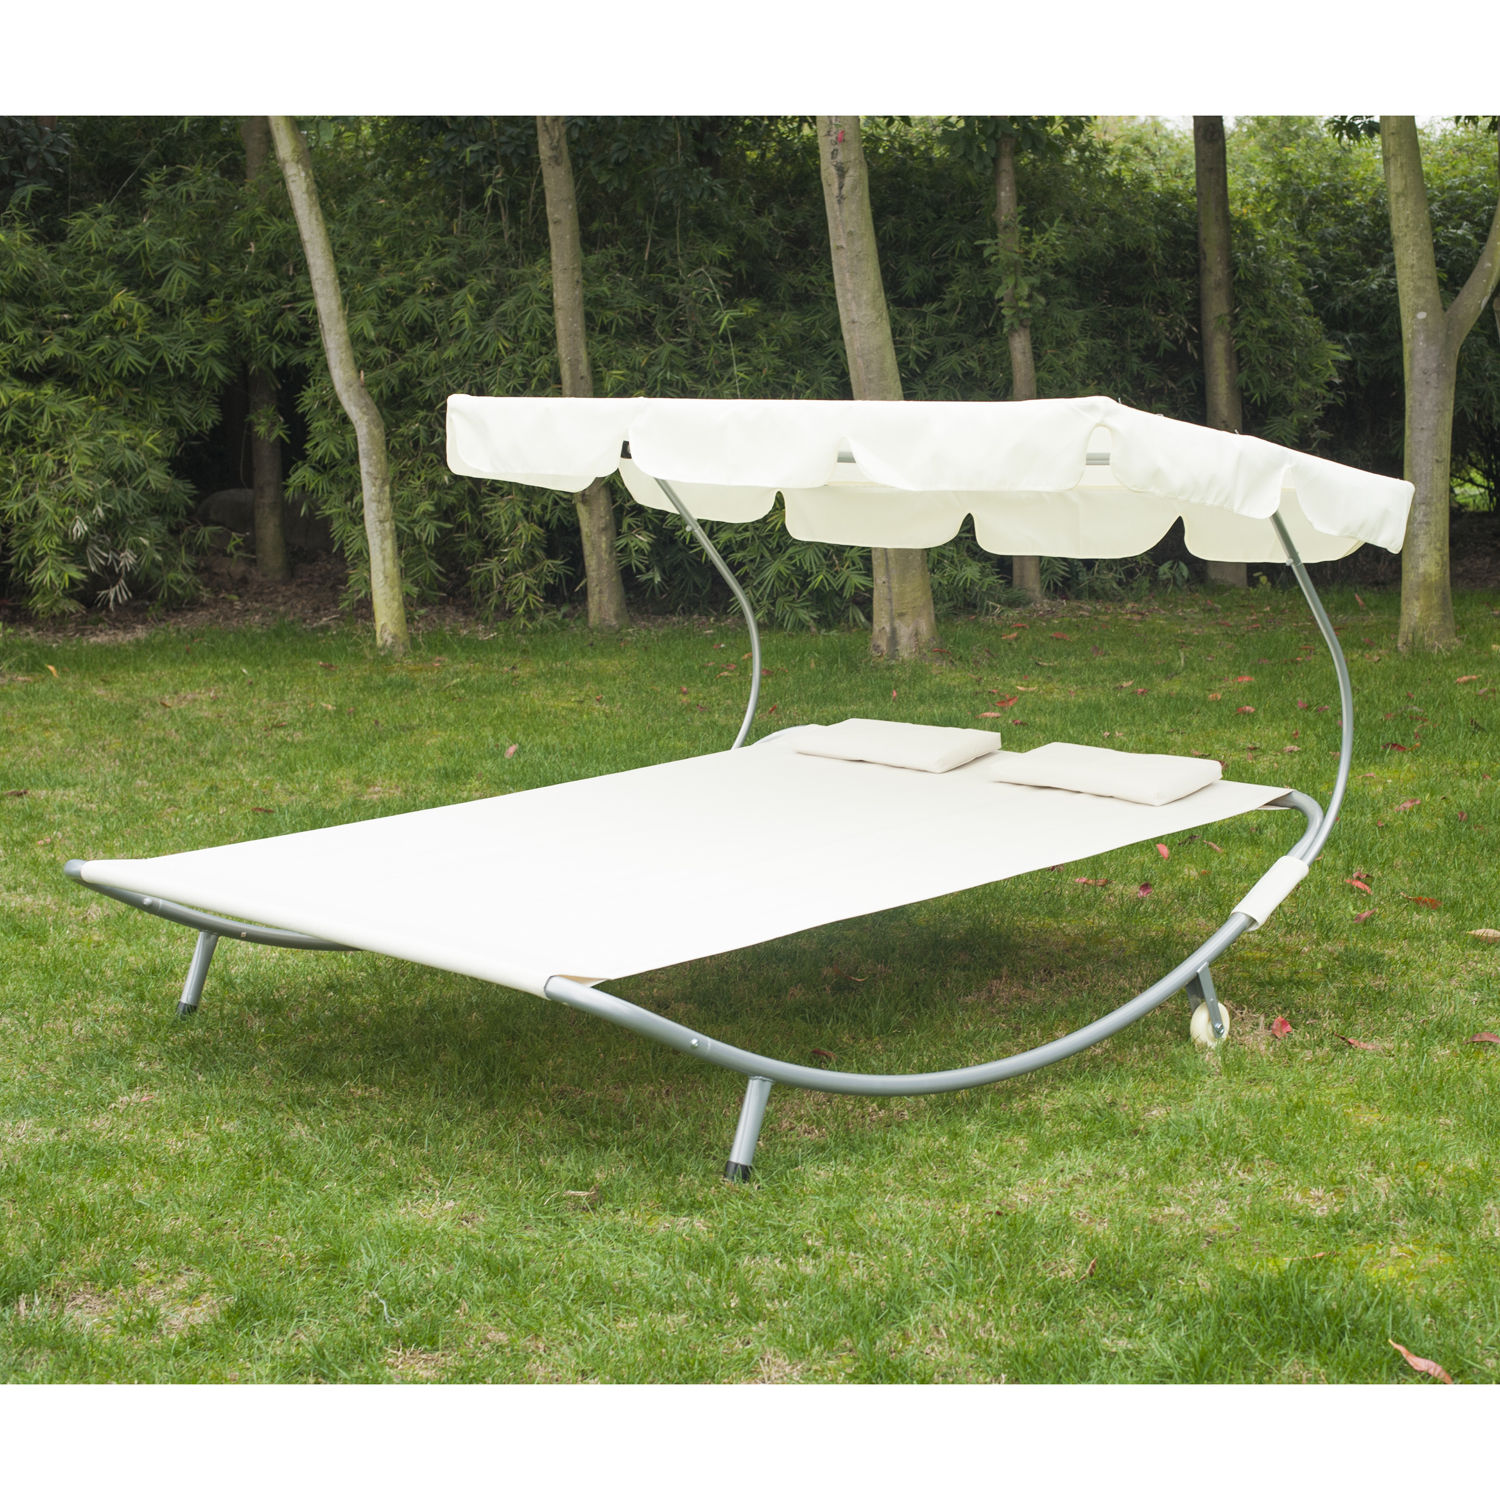 w sunshade patio with hg bi canopy swing beige beach backyard yard outdoor hammock shade itm sunroof